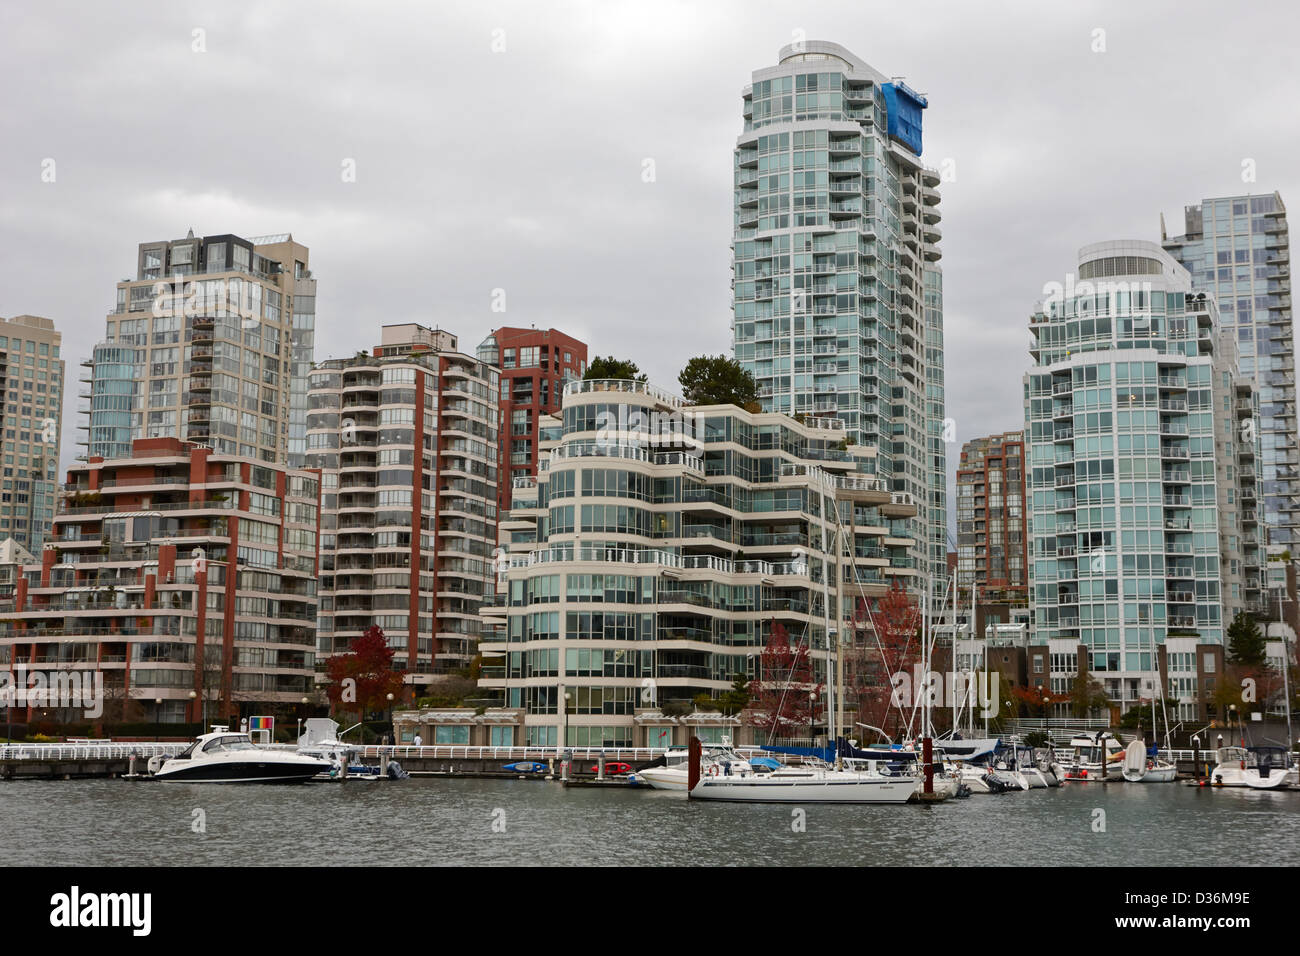 False Creek Yacht Club Yacht Harbour Pointe And Waterfront